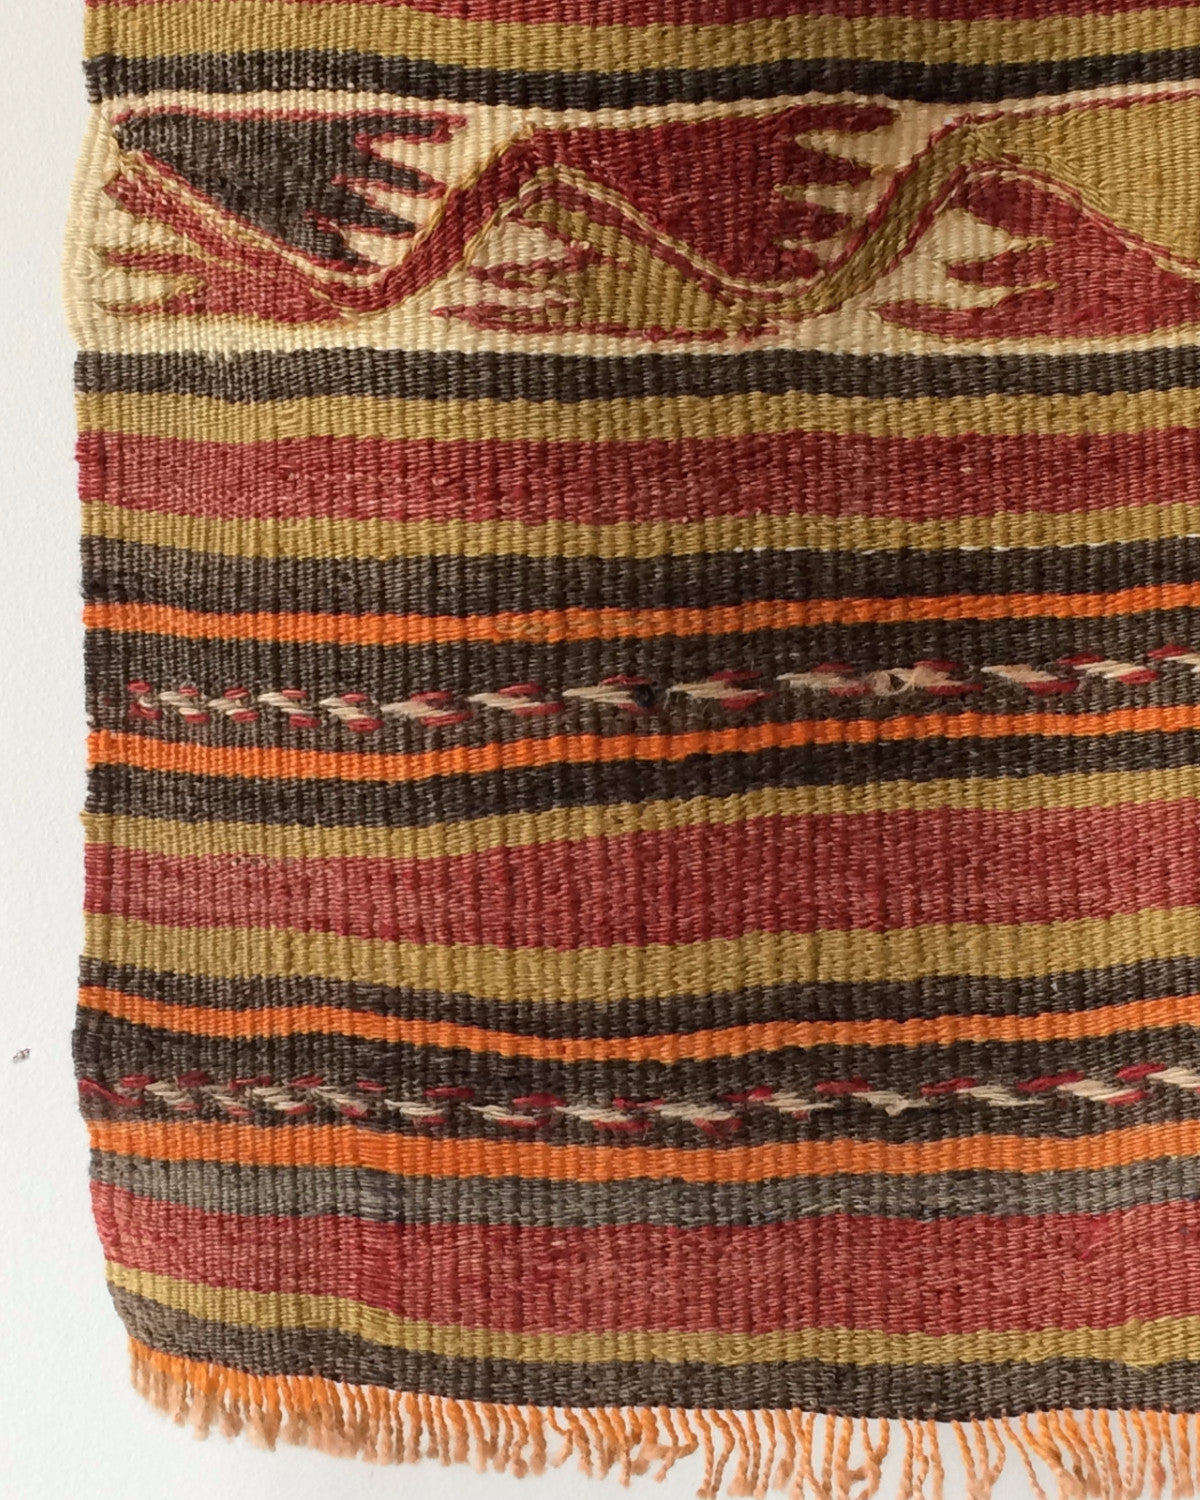 Vintage Kilim Rug Patterned Stripe